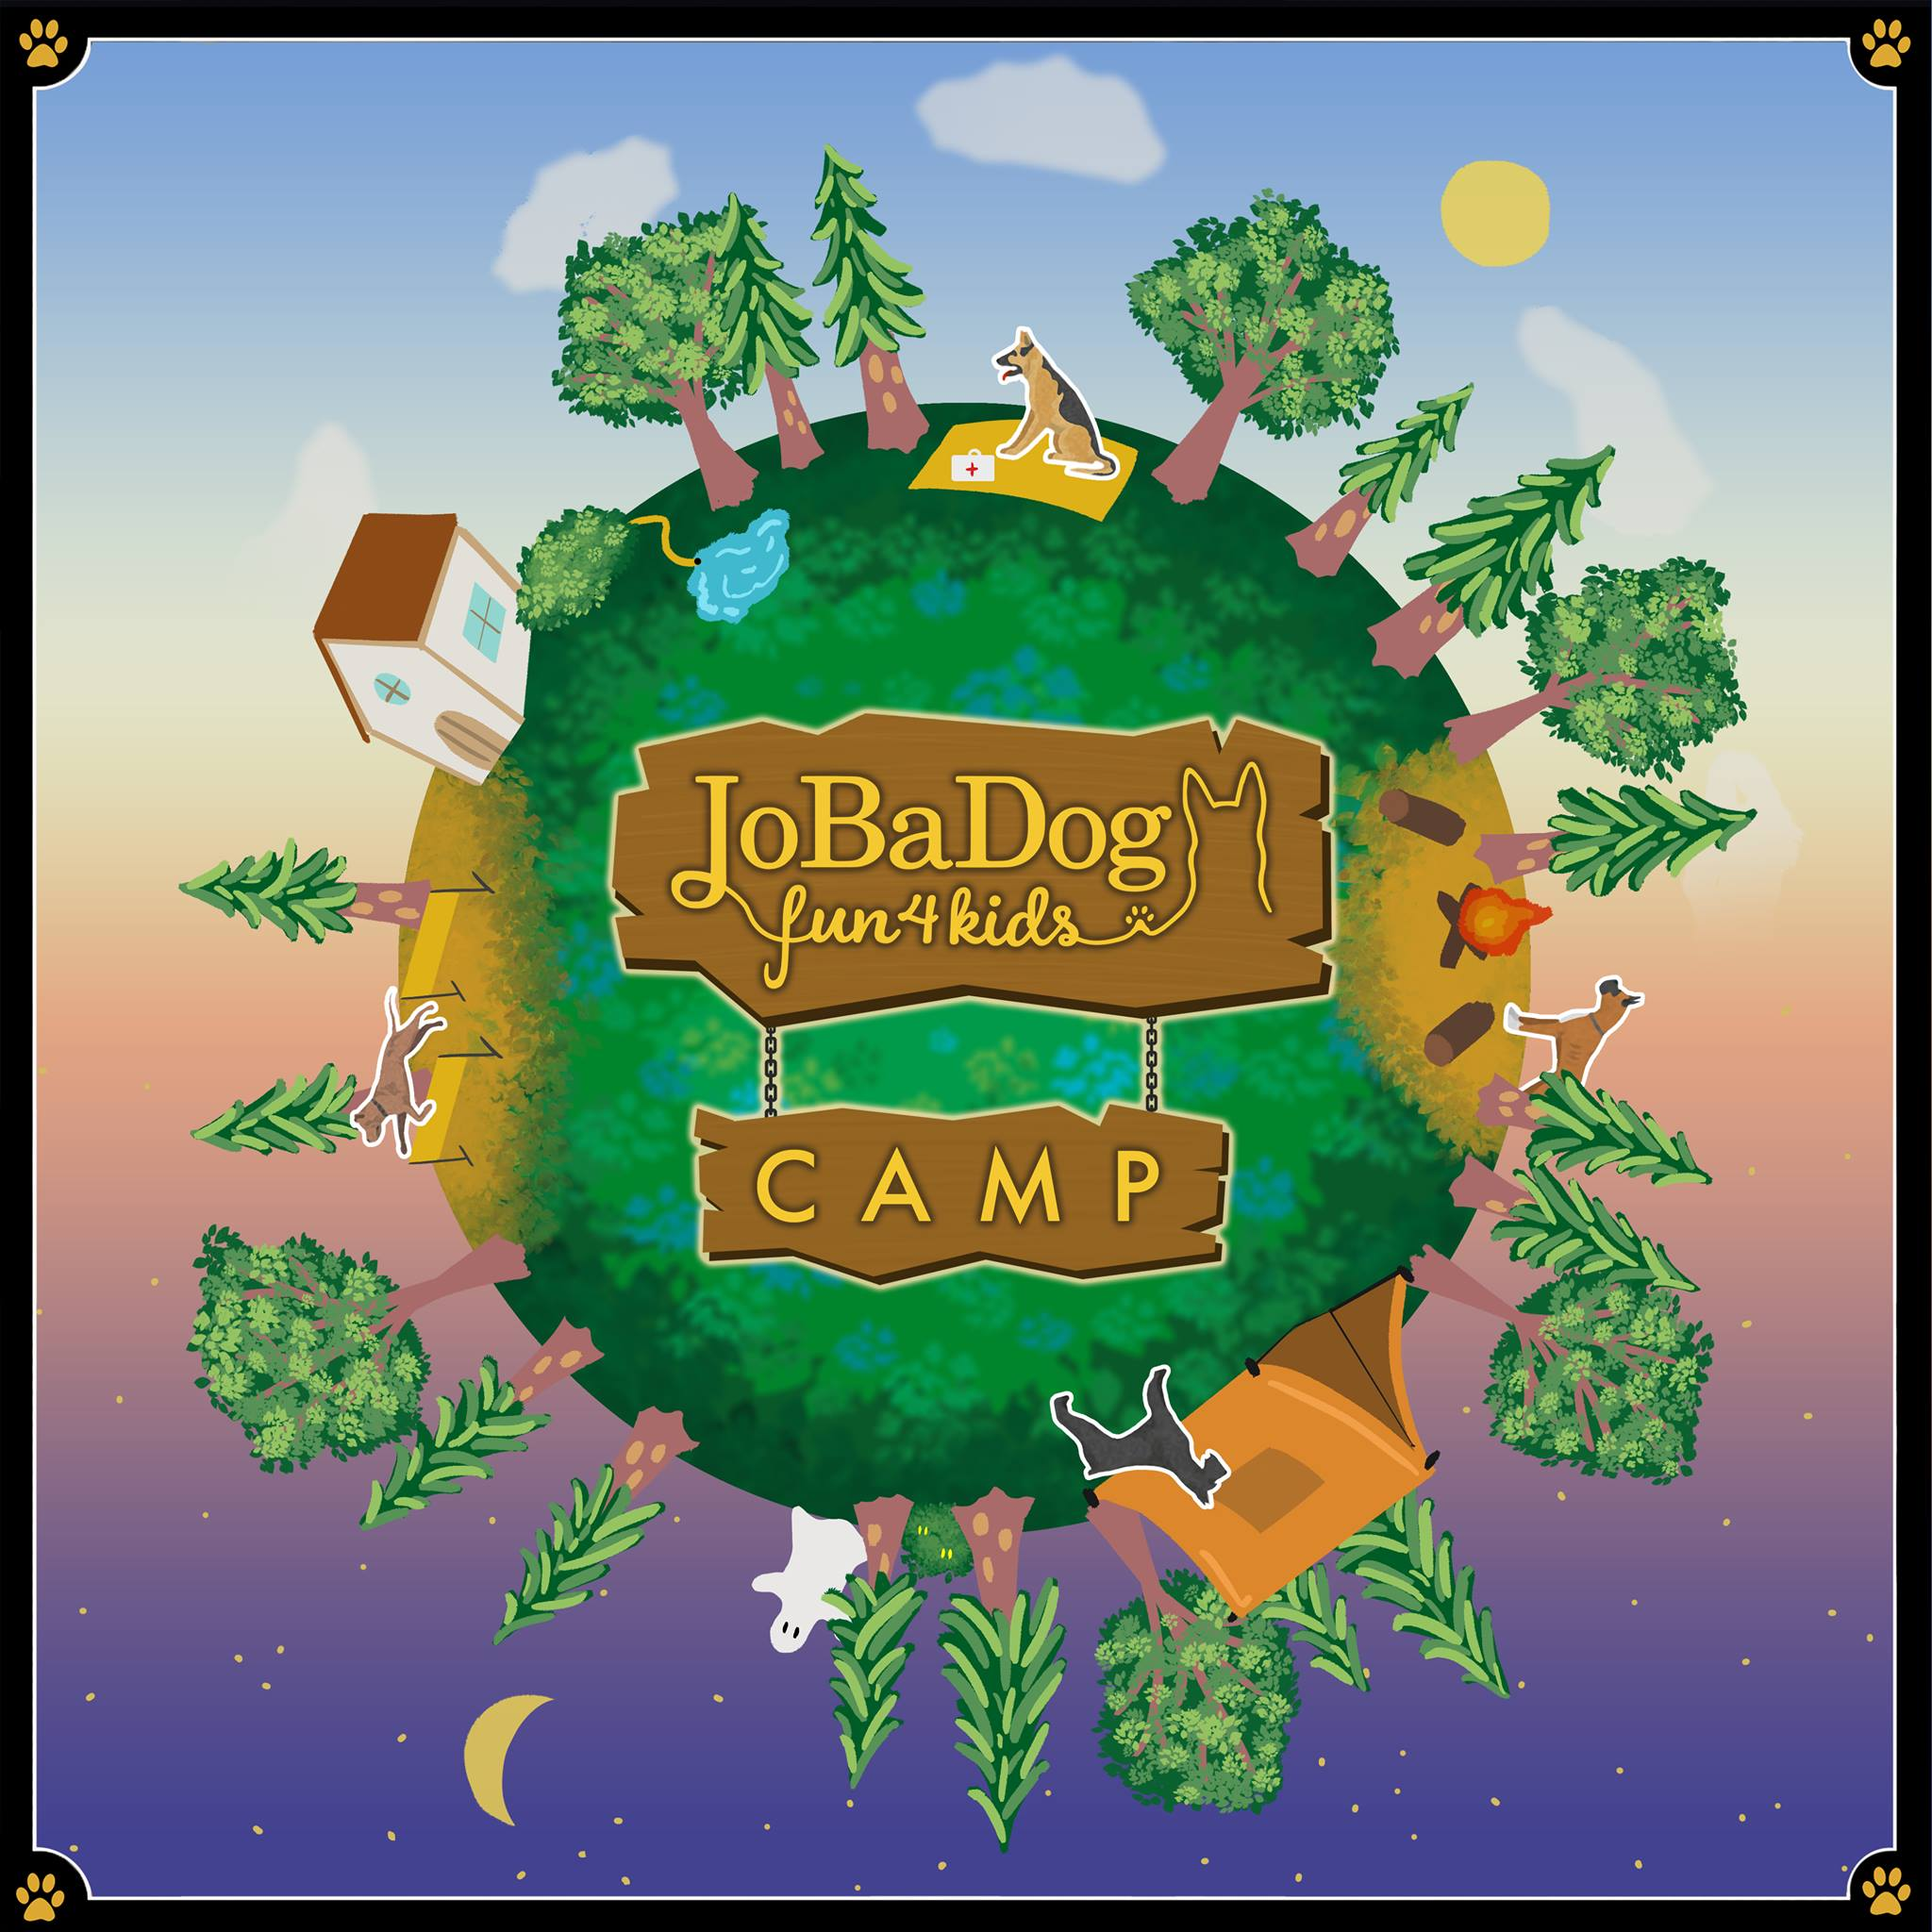 JoBaDog_fun4kids-Camp.jpg